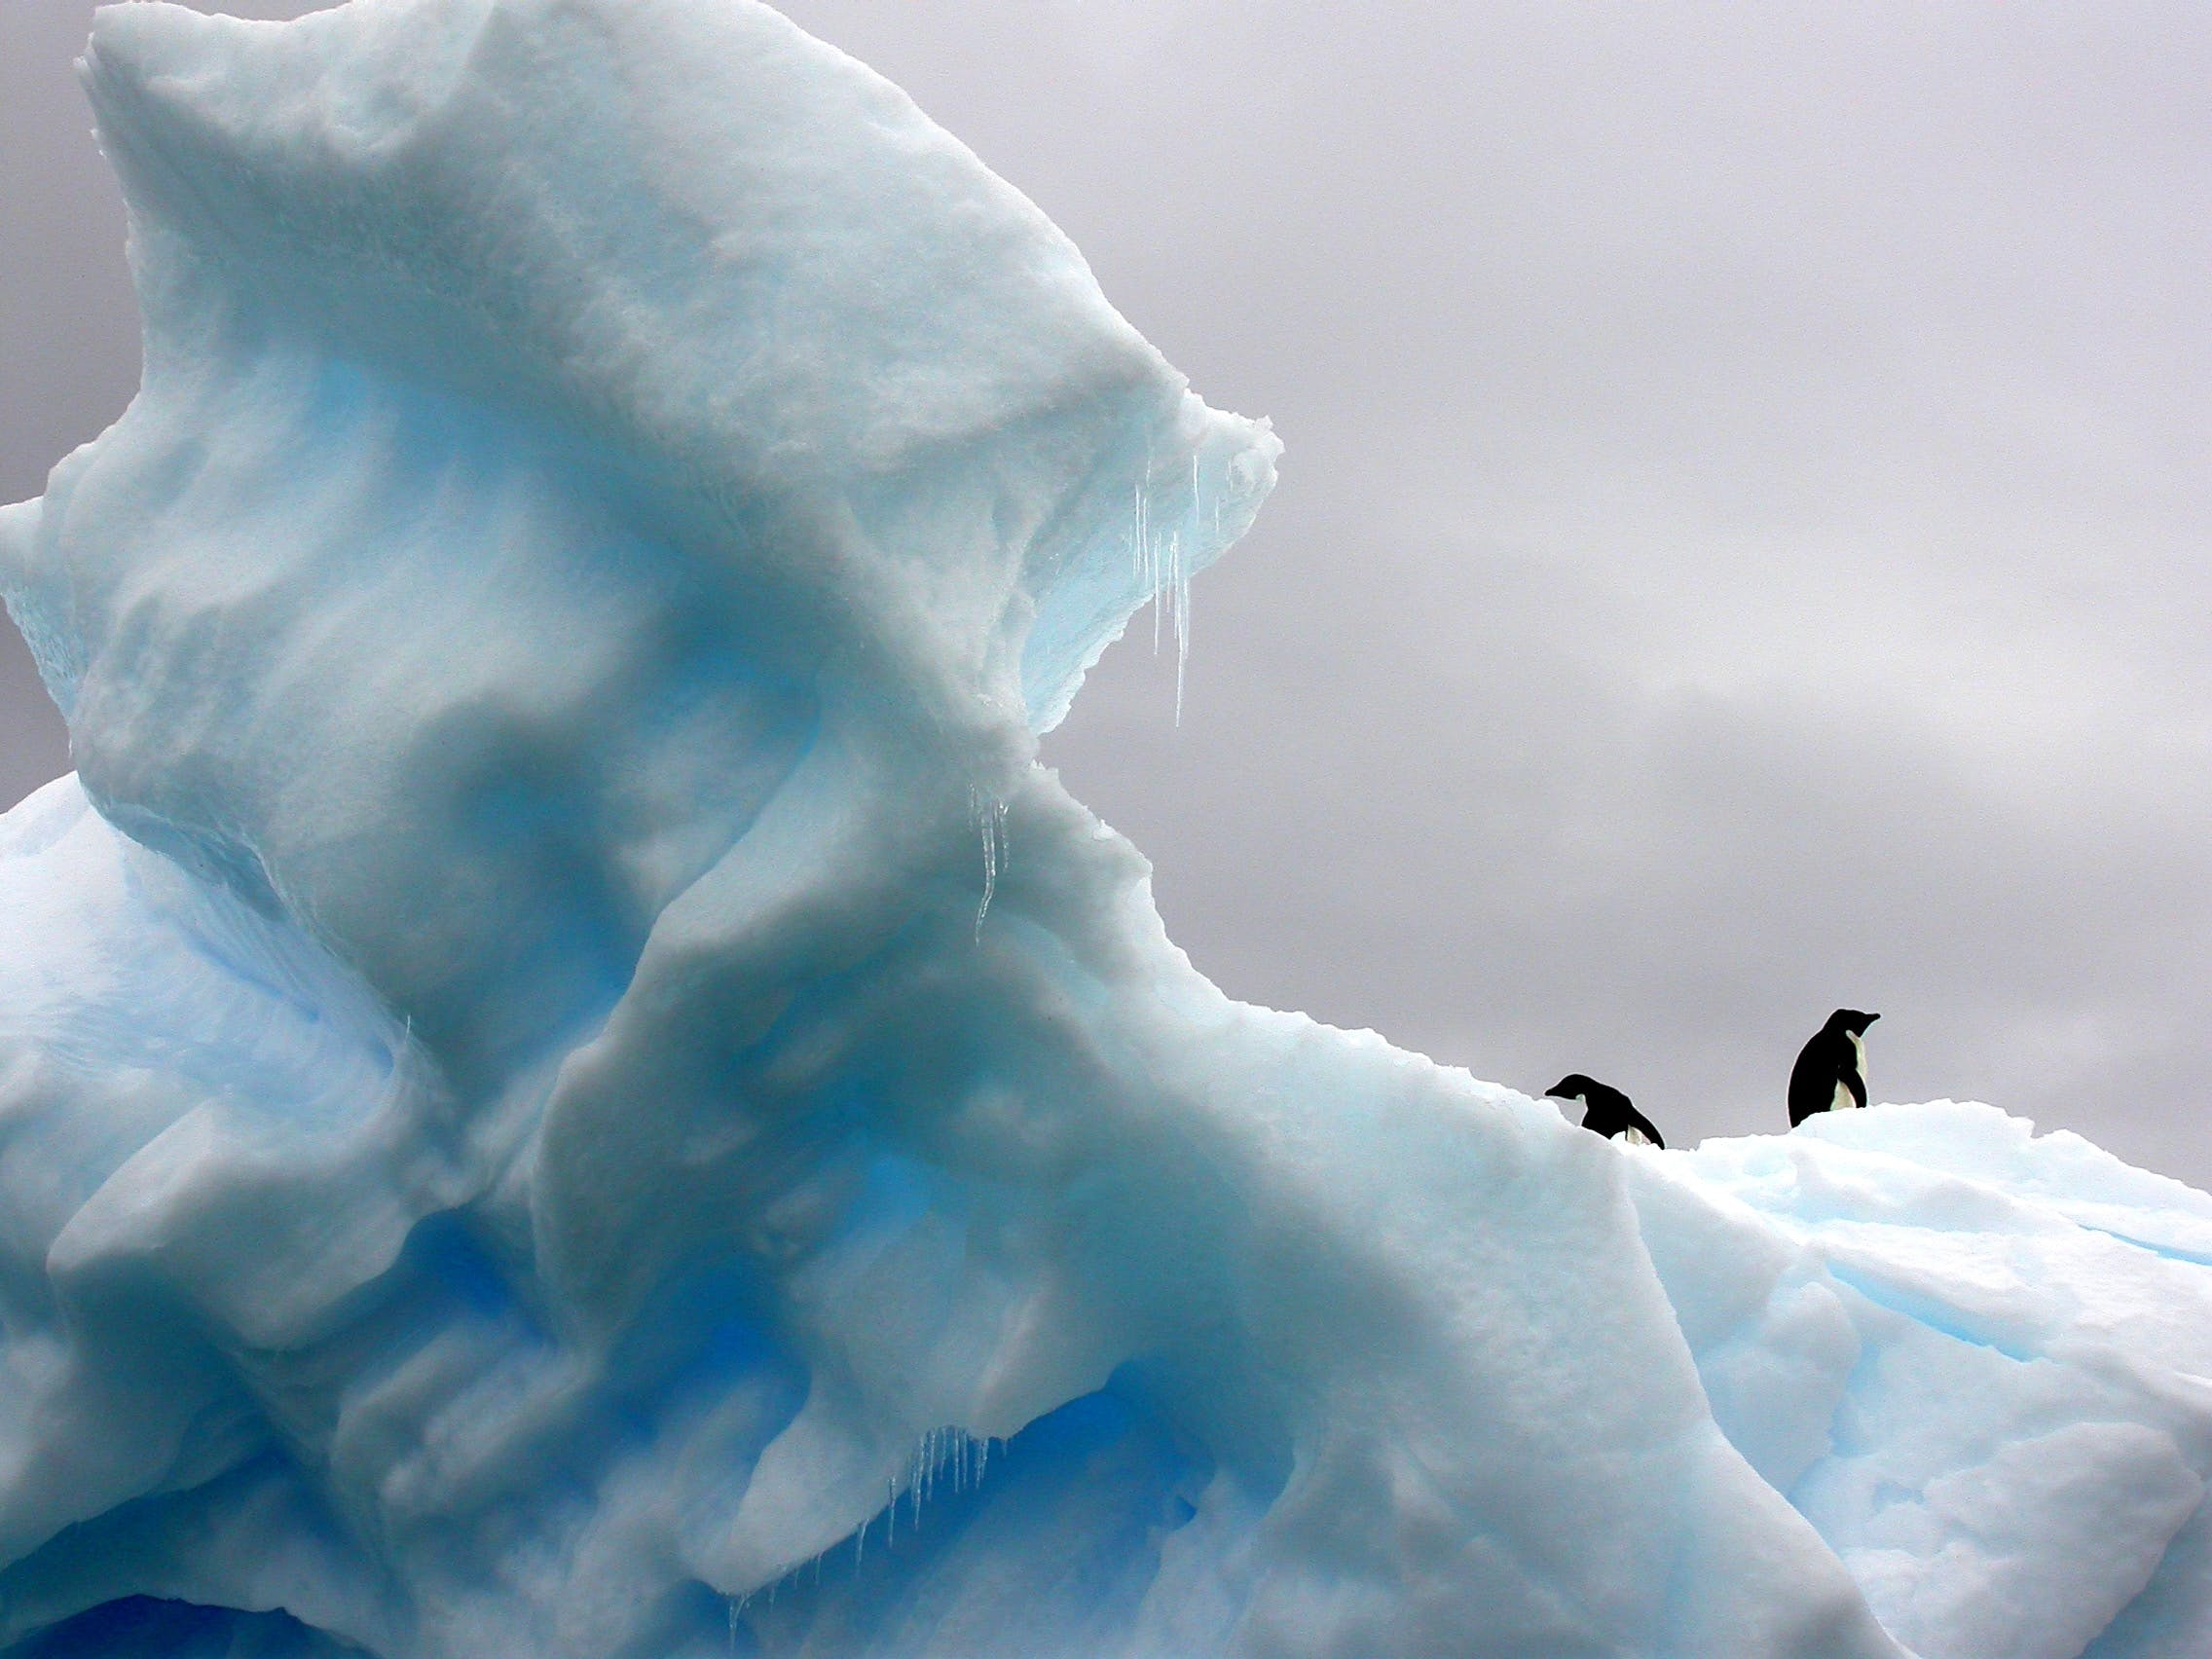 Arctic Ice and Penguins - Photo by Teodor Bjerrang